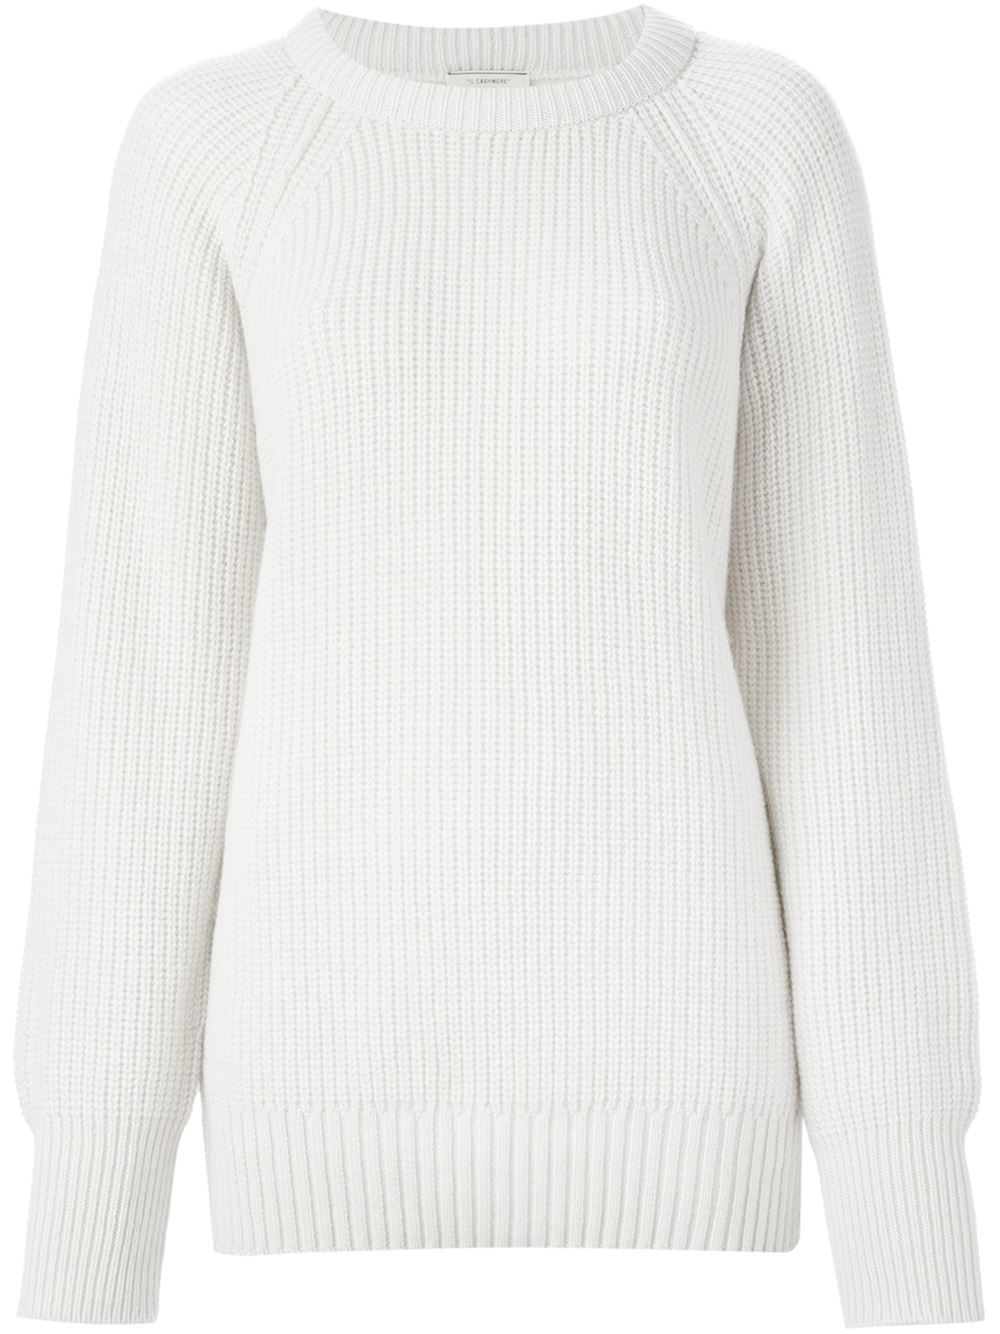 Find great deals on eBay for white crew neck sweater. Shop with confidence.